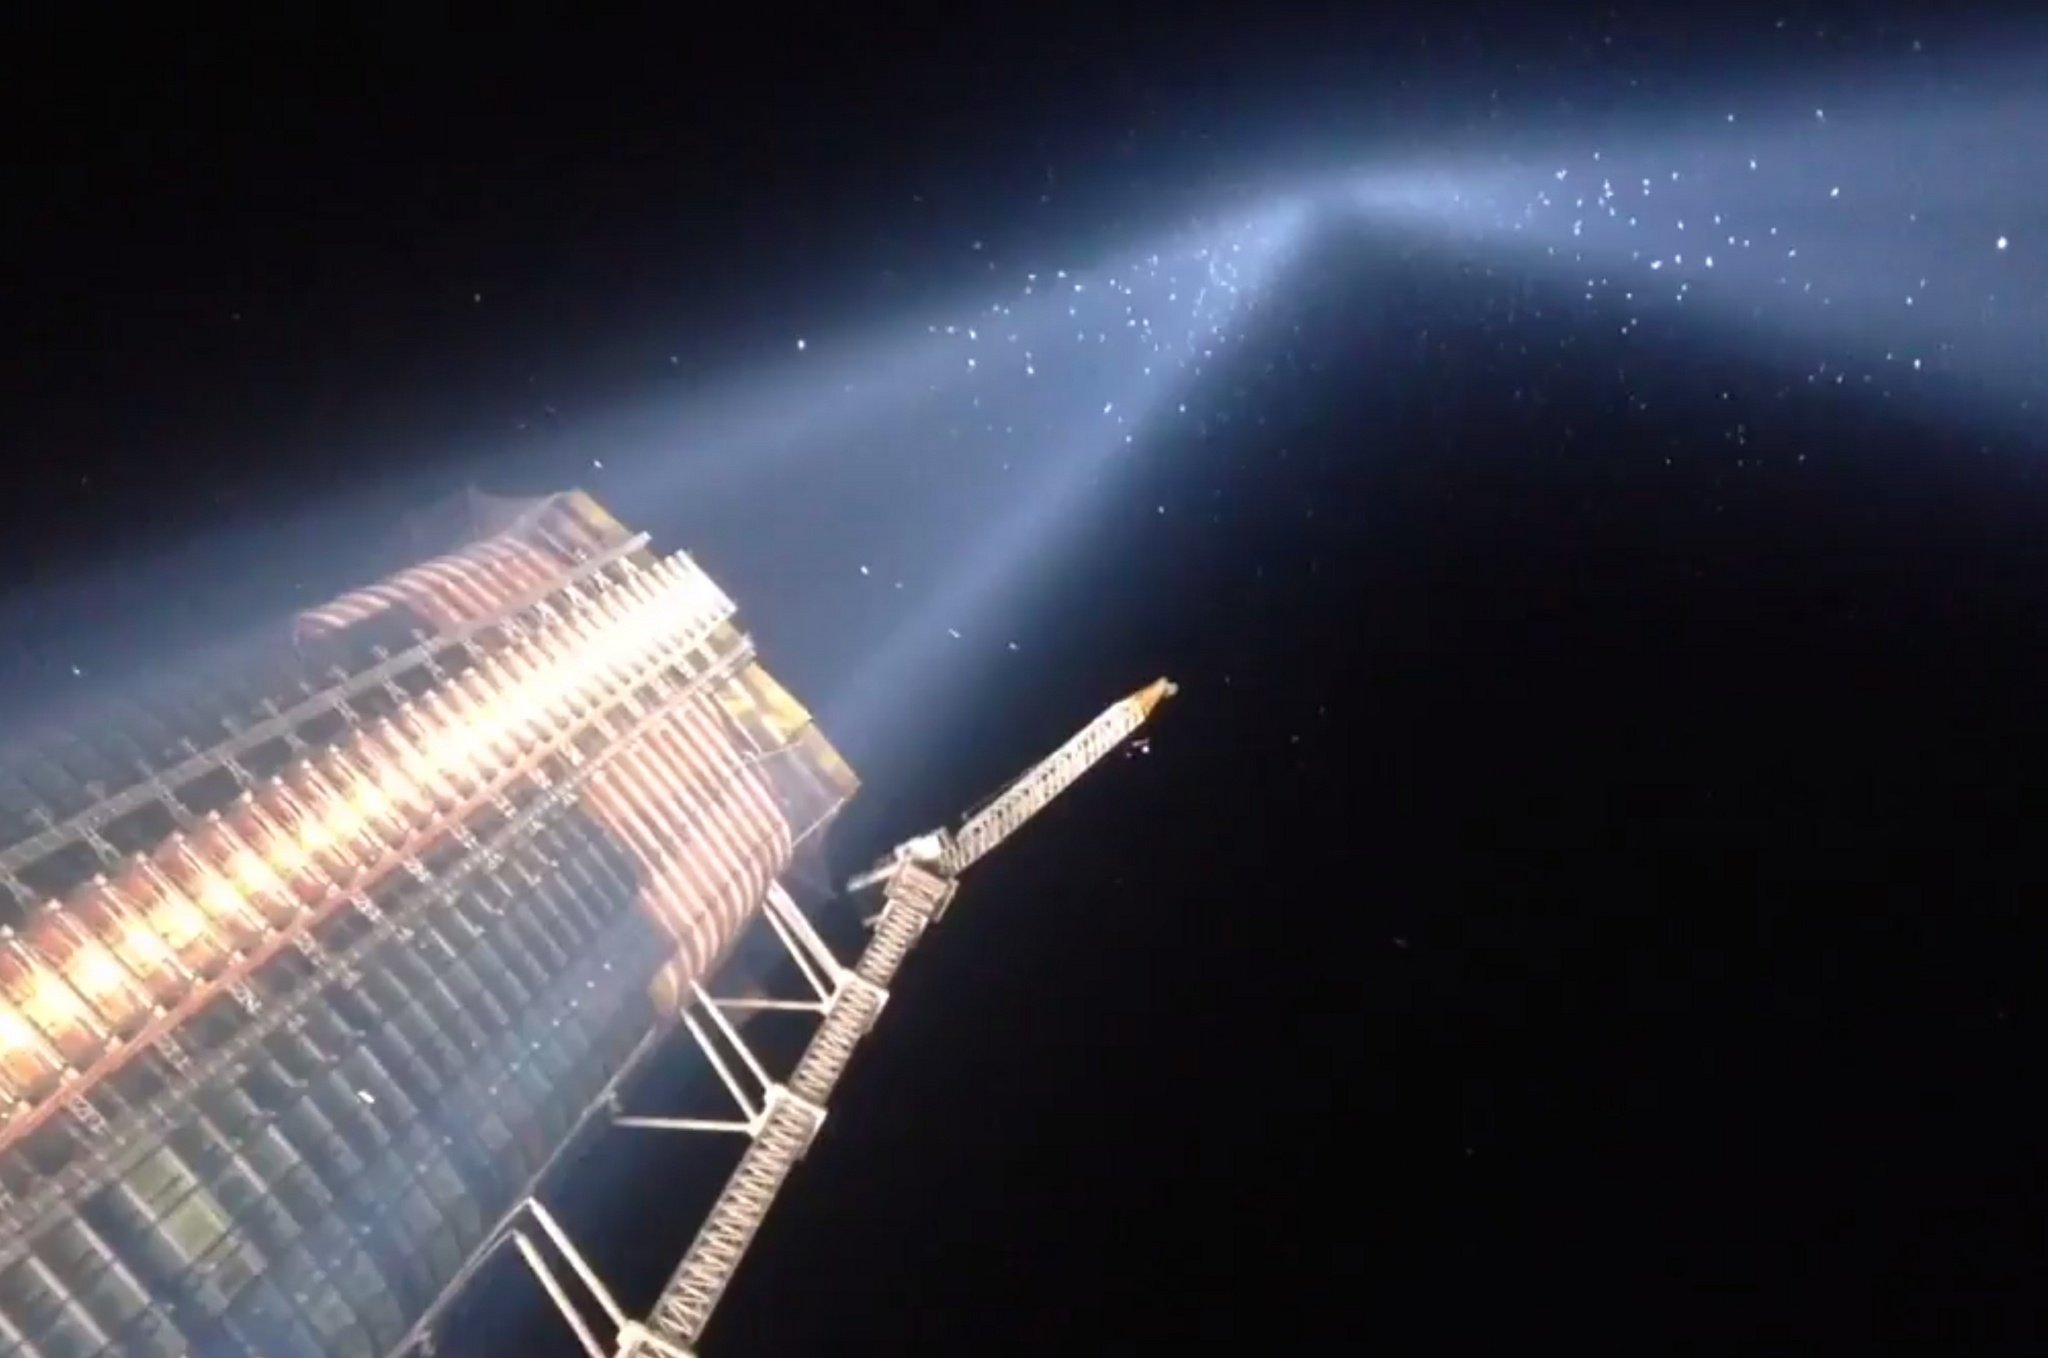 9/11 Tribute in Light shut off repeatedly to help birds